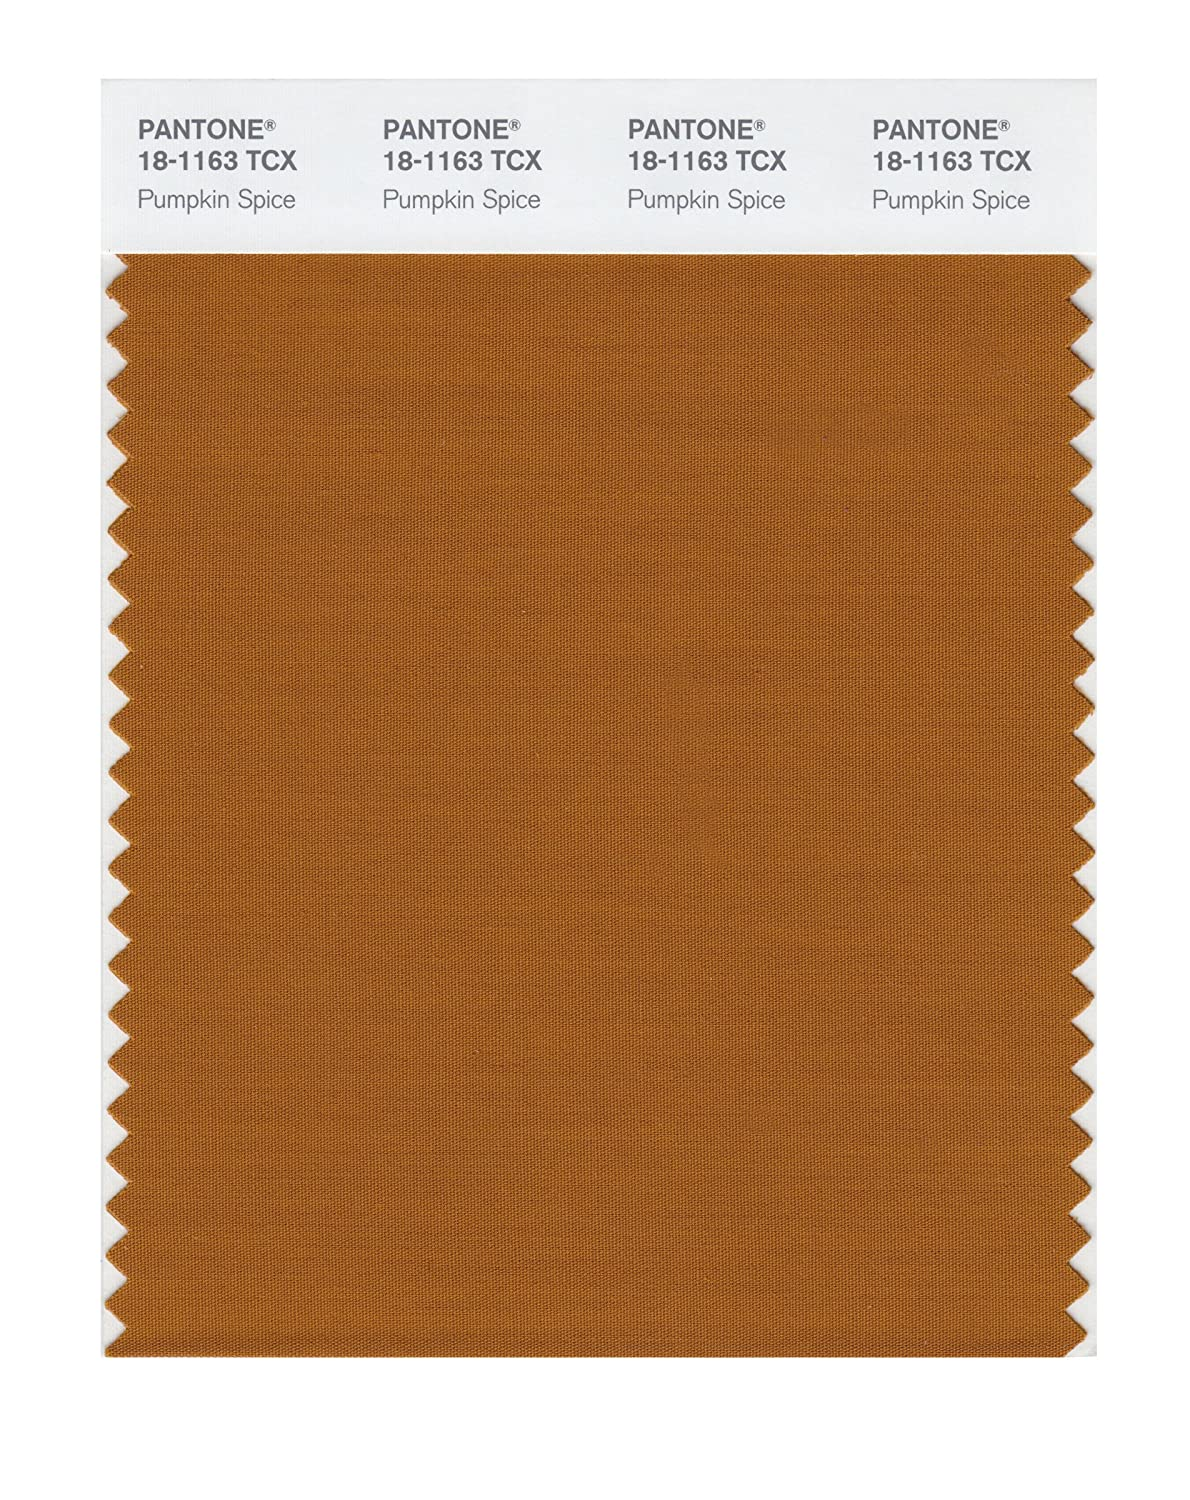 Pantone 18-1163 TCX Smart Color Swatch Card, Pumpkin Spice - House Paint -  Amazon.com